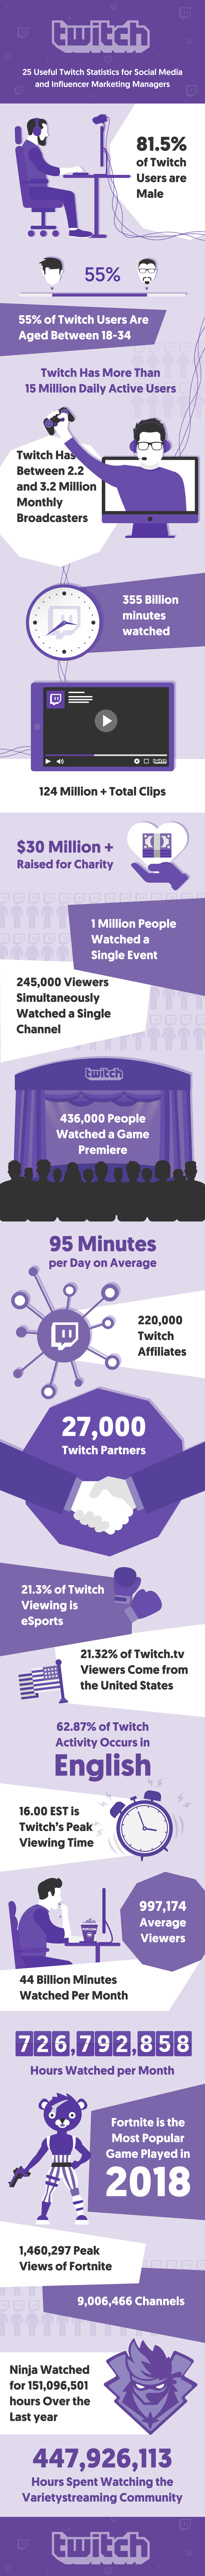 25 Useful Twitch Statistics for Social Media and Influencer Marketing Managers